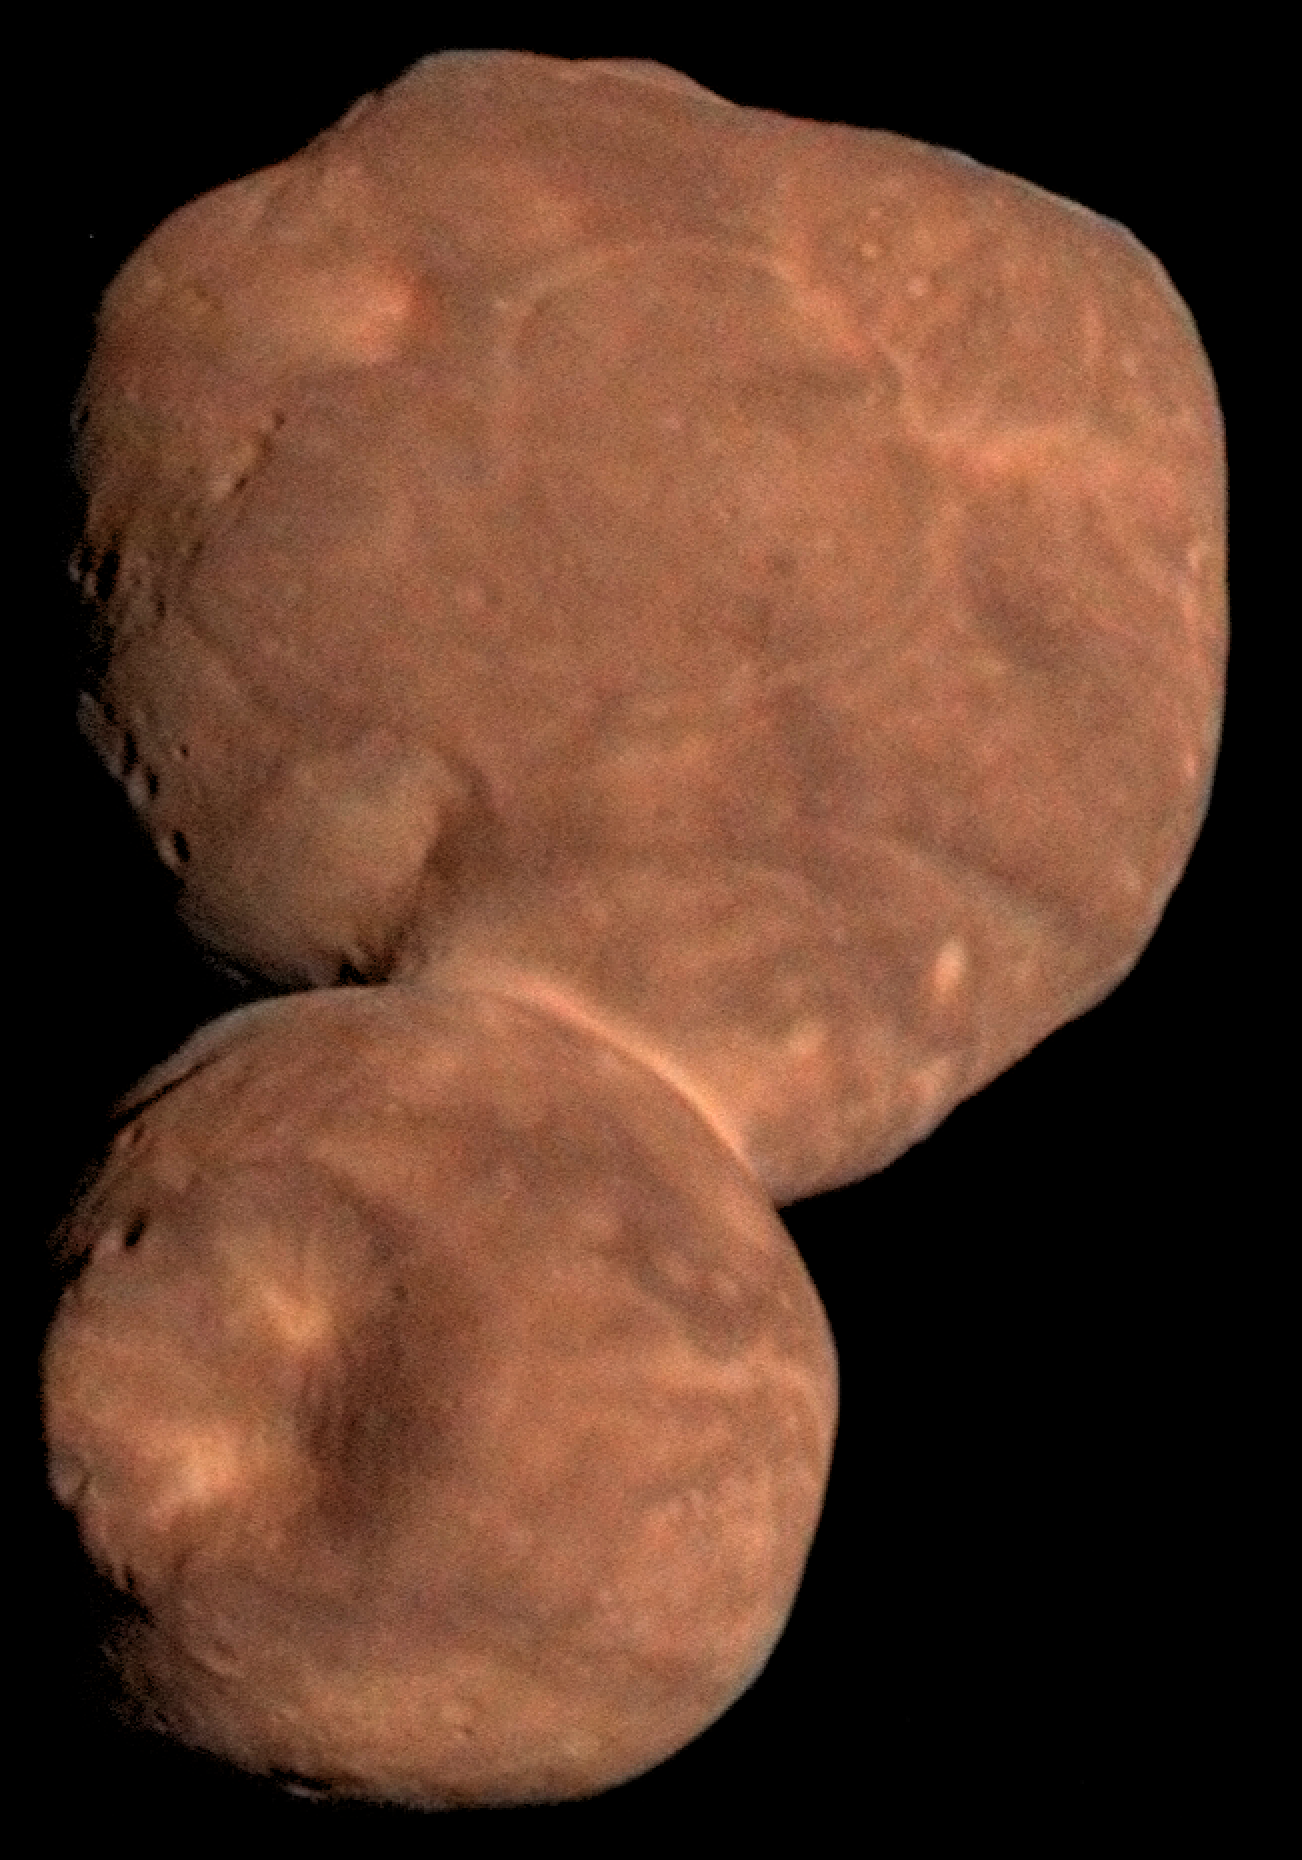 UltimaThule_CA06_color_vertical_%28rotated%29.png